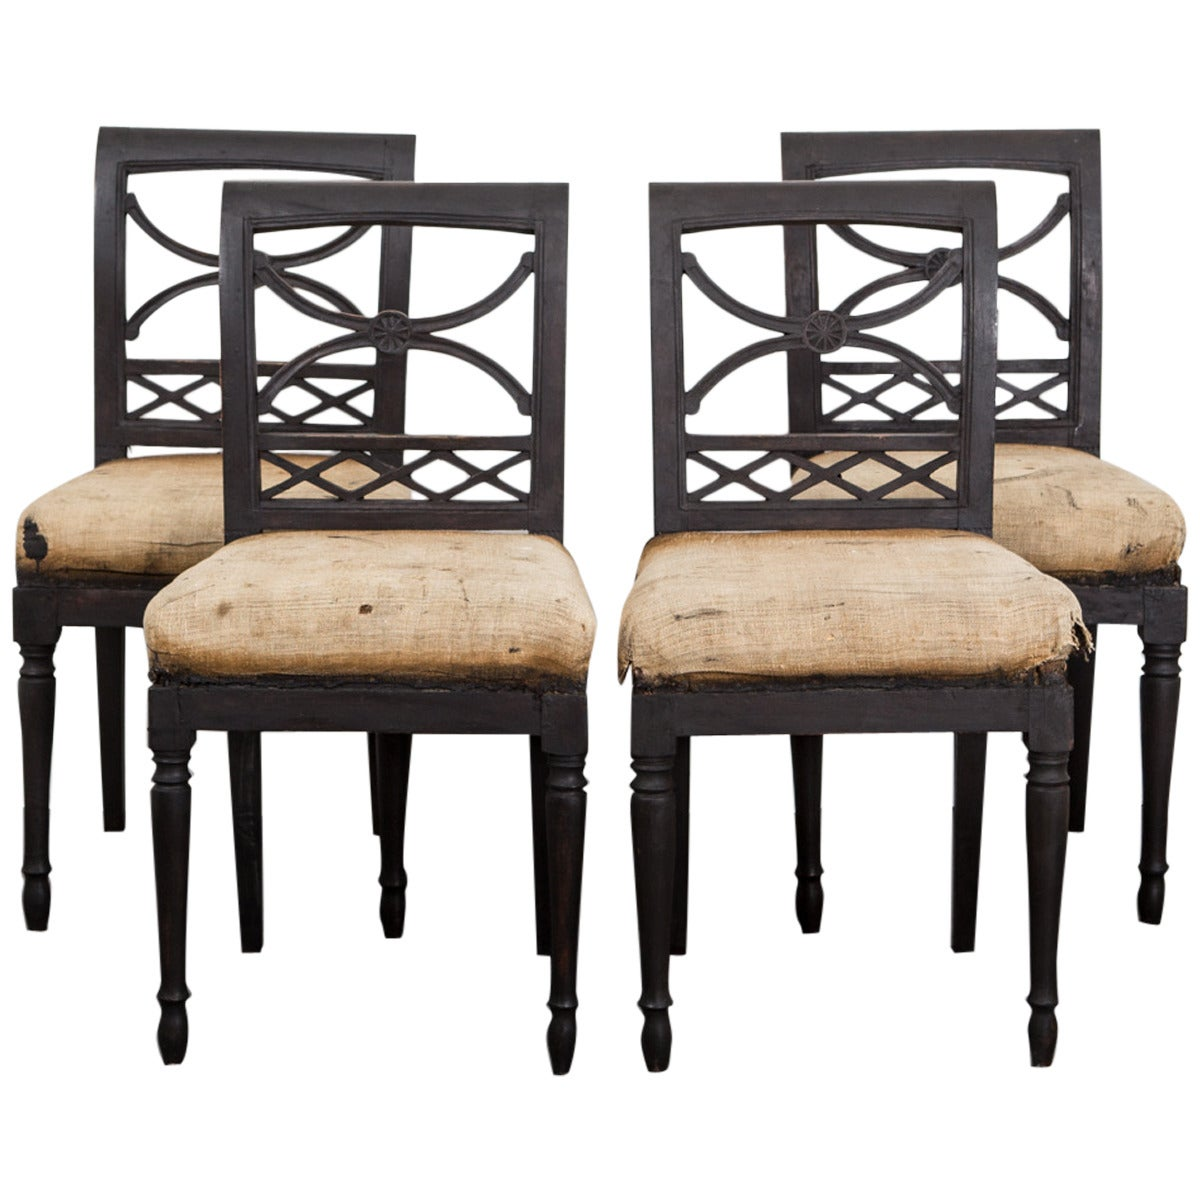 Chairs Swedish Dining Chairs Set of Four 18th Century Swedish Black, Sweden